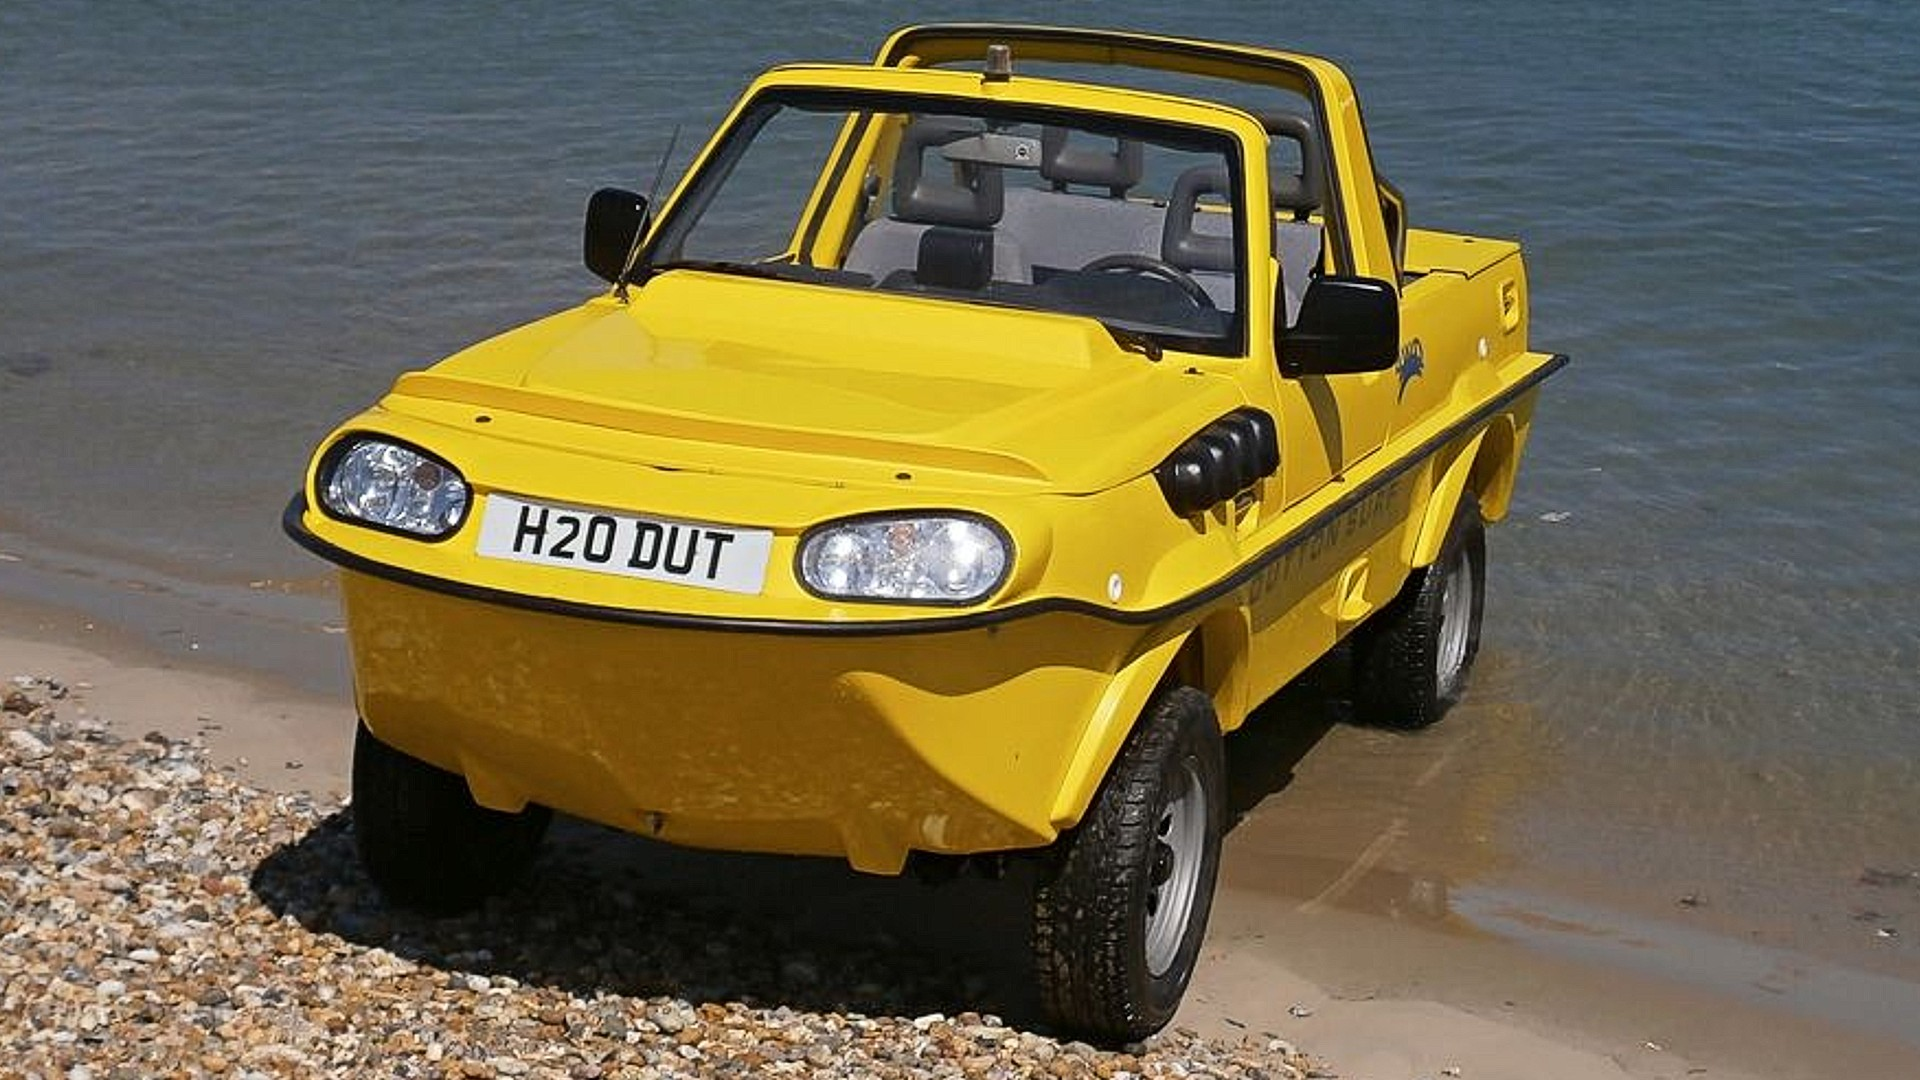 British car tuner Dutton now ships a conversion kit that can turn your old-gen Suzuki Jimny into an amphibious vehicle equally suited for roads and traversing bodies of water.